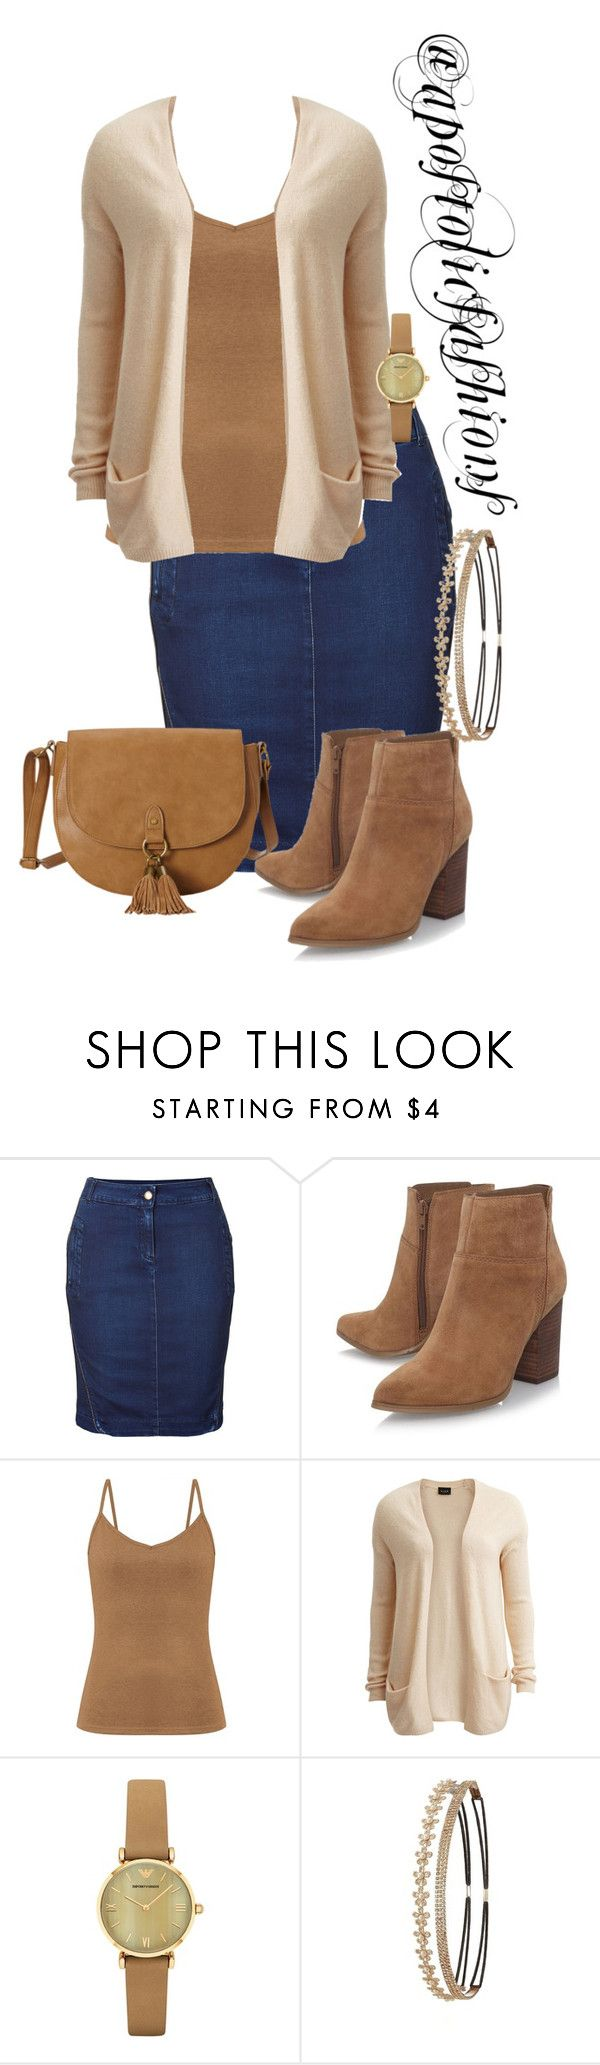 """Apostolic Fashions #1616"" by apostolicfashions ❤ liked on Polyvore featuring Just Cavalli, Nine West, VILA, Emporio Armani, Charlotte Russe, T-shirt & Jeans, modestlykay and modestlywhit"